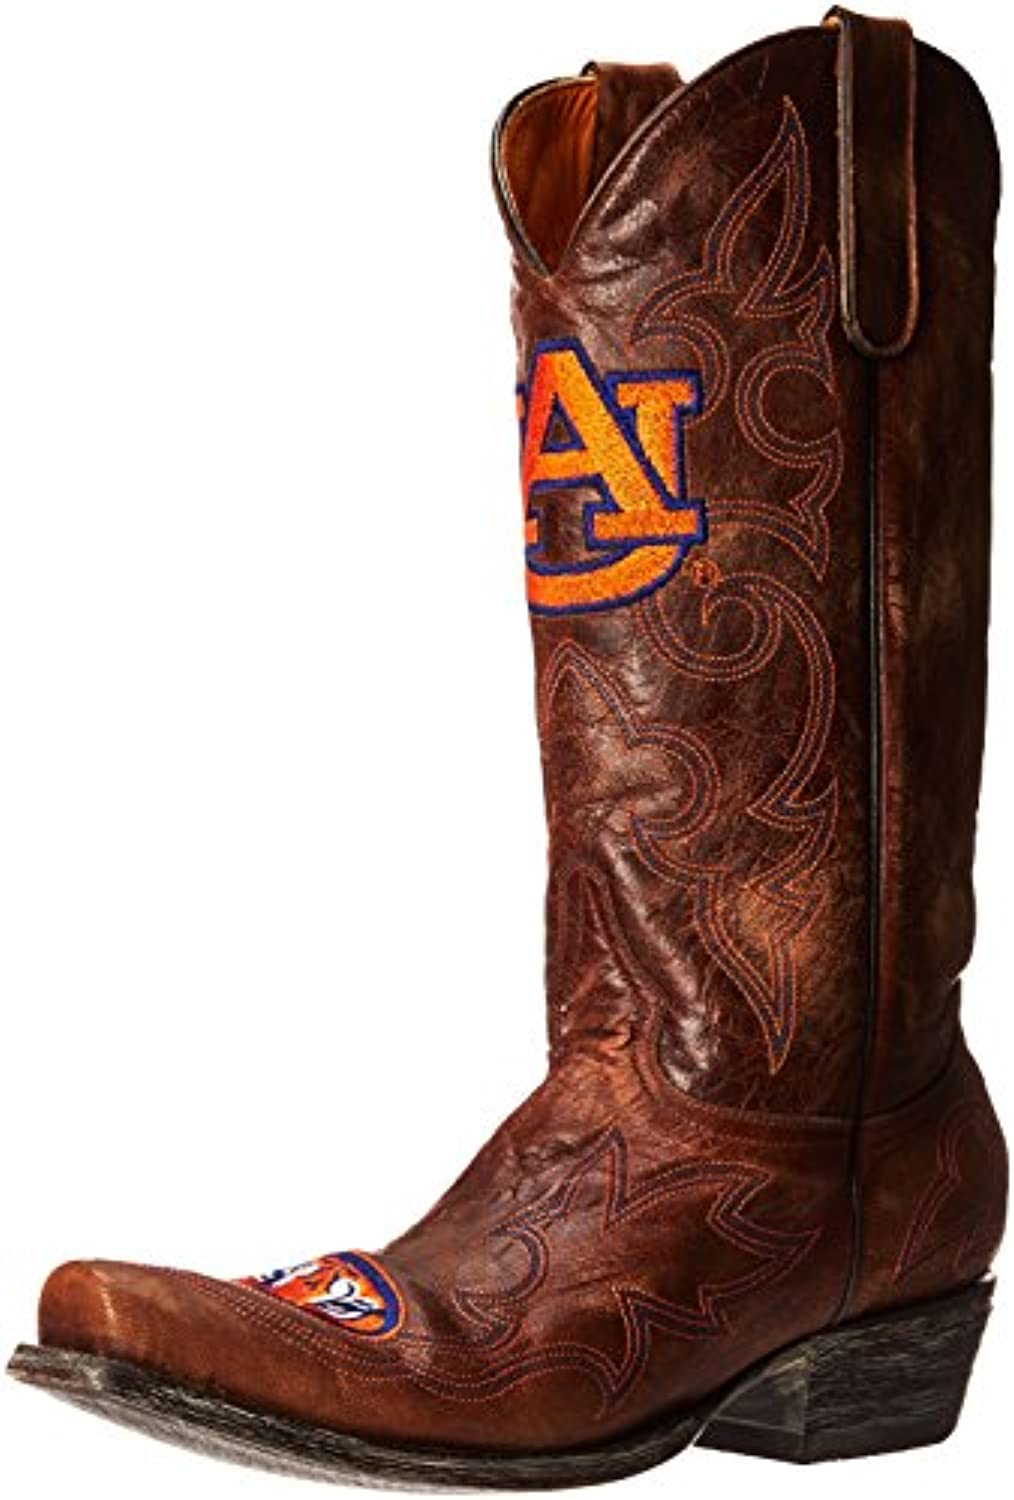 NCAA Auburn Tigers Herren Gameday Stiefel